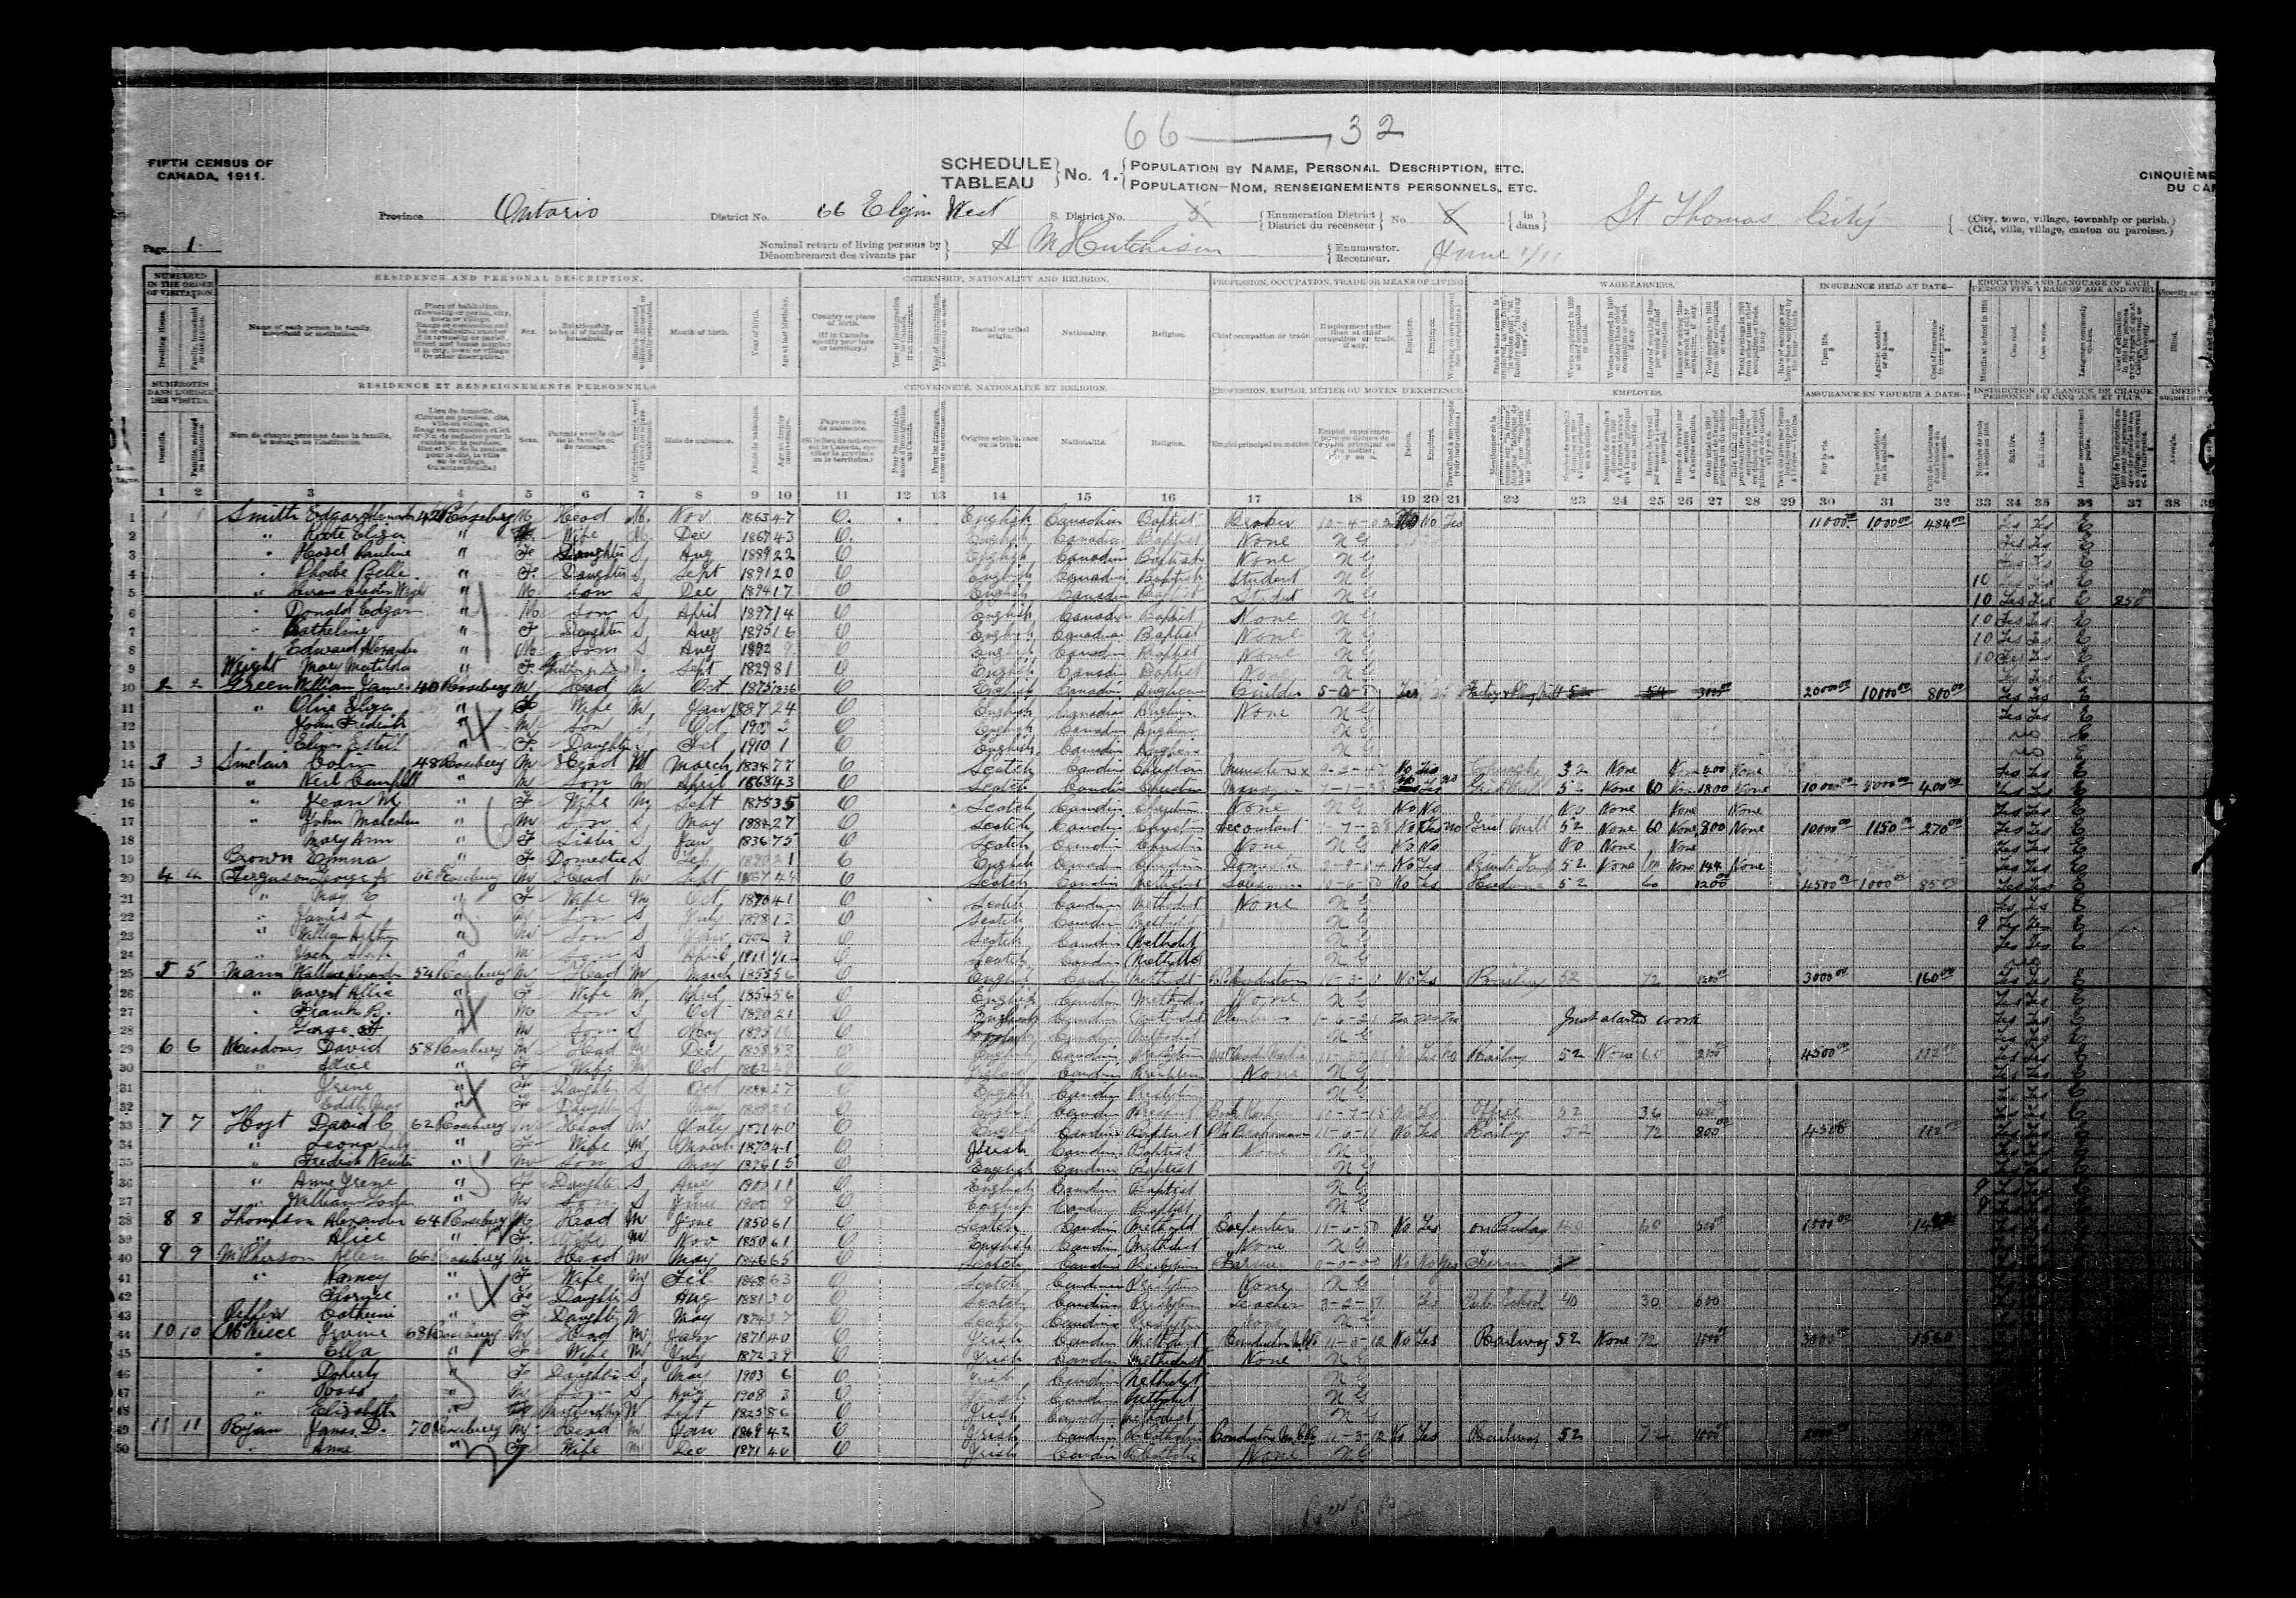 Digitized page of Census of Canada, 1911, Page number 1, for William Ja Green